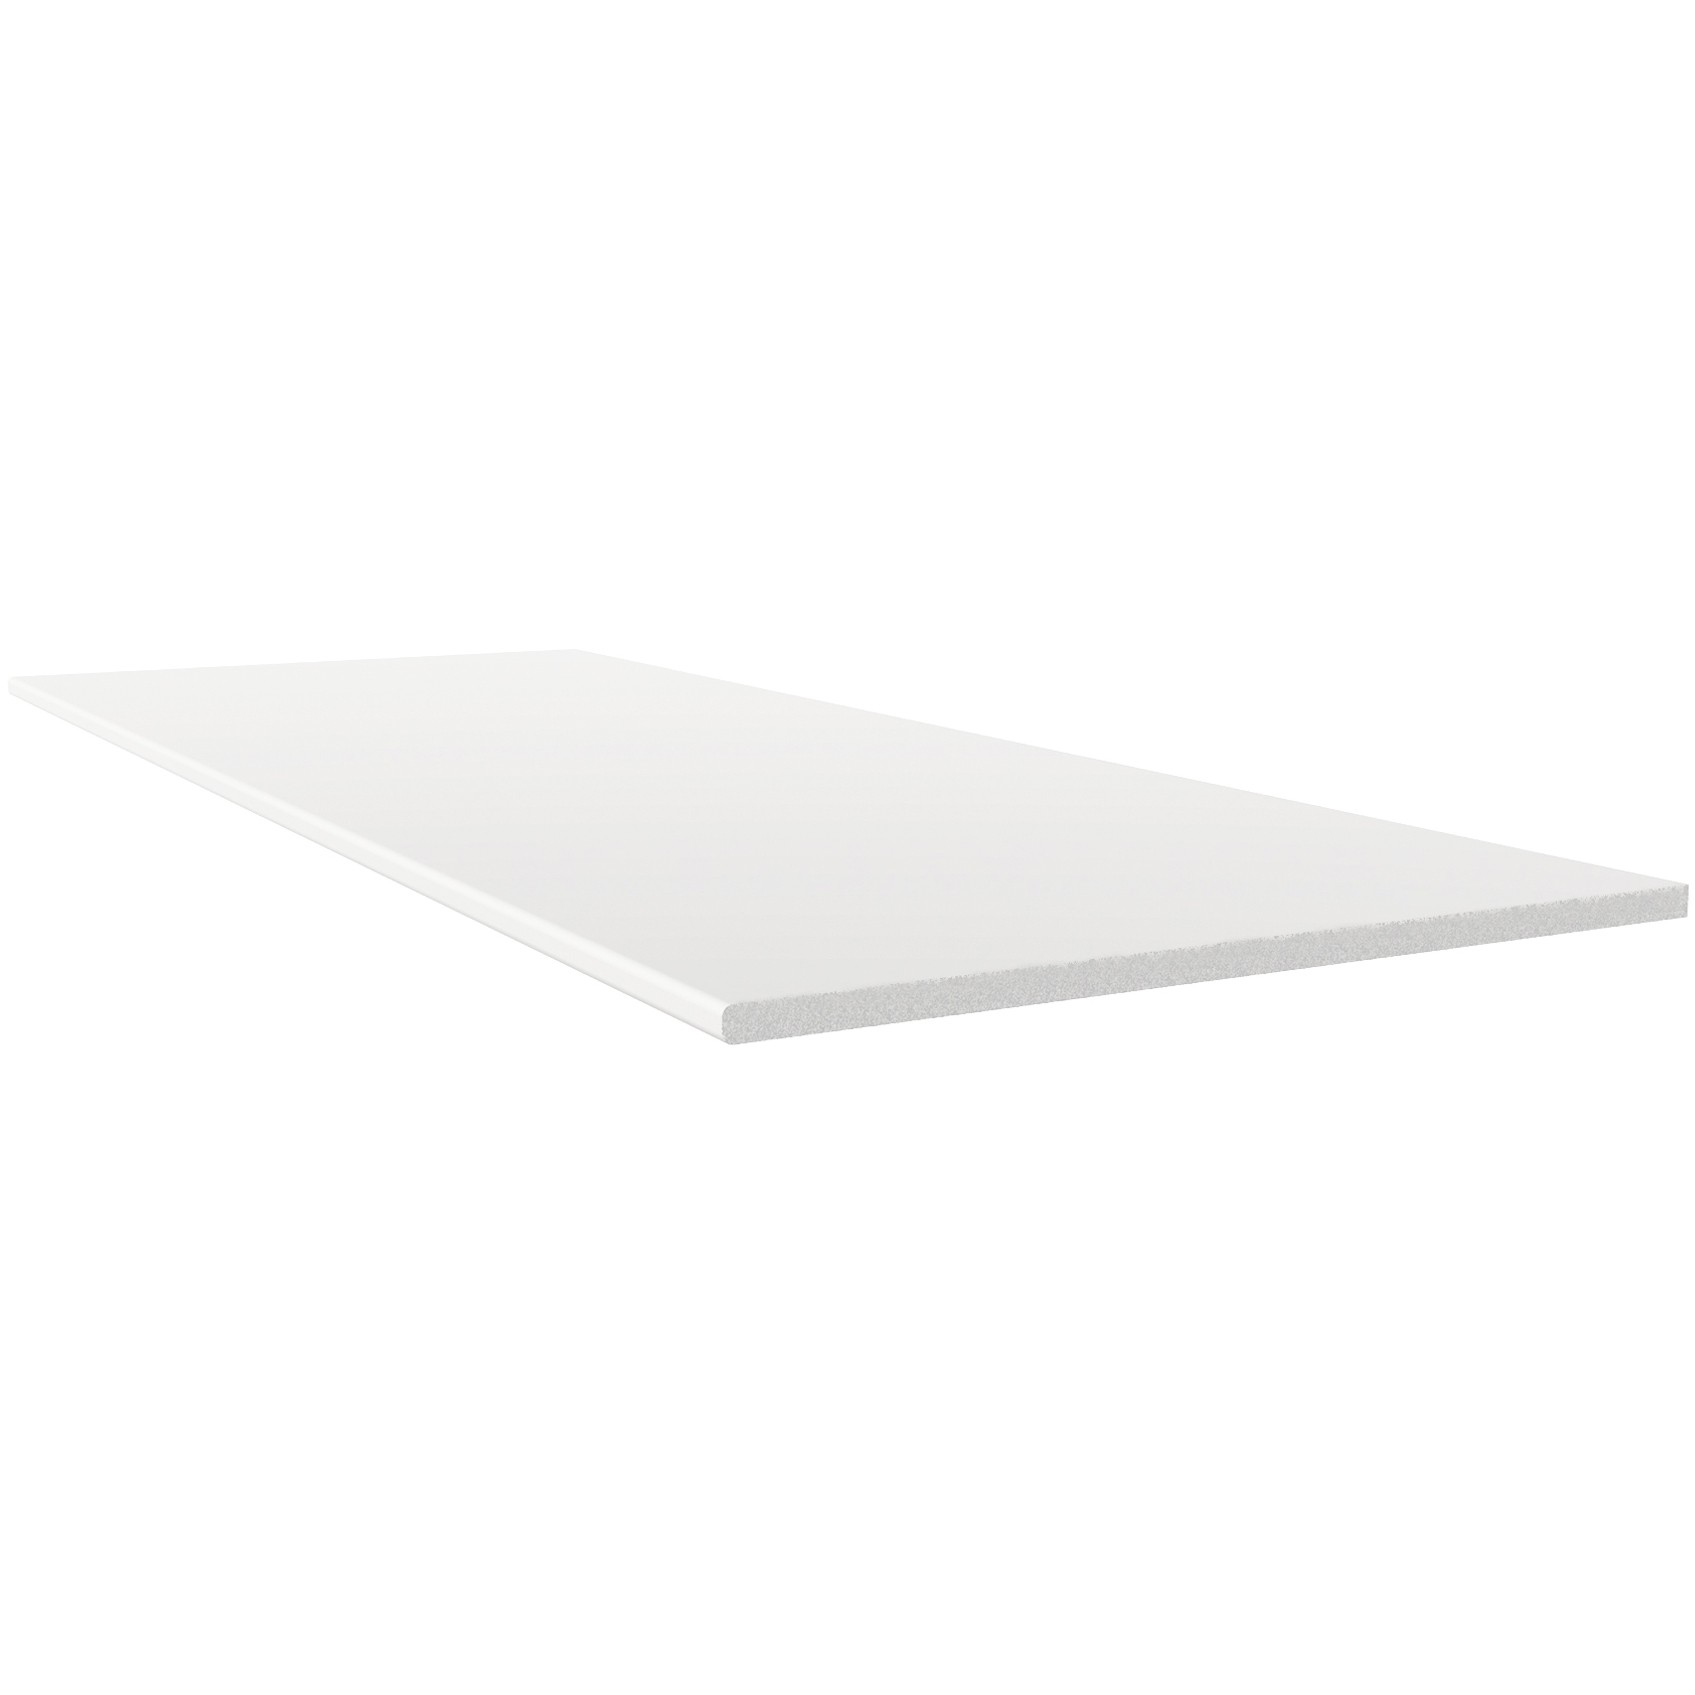 Freefoam 10mm Solid Soffit Board - White, 175mm, 5 metre